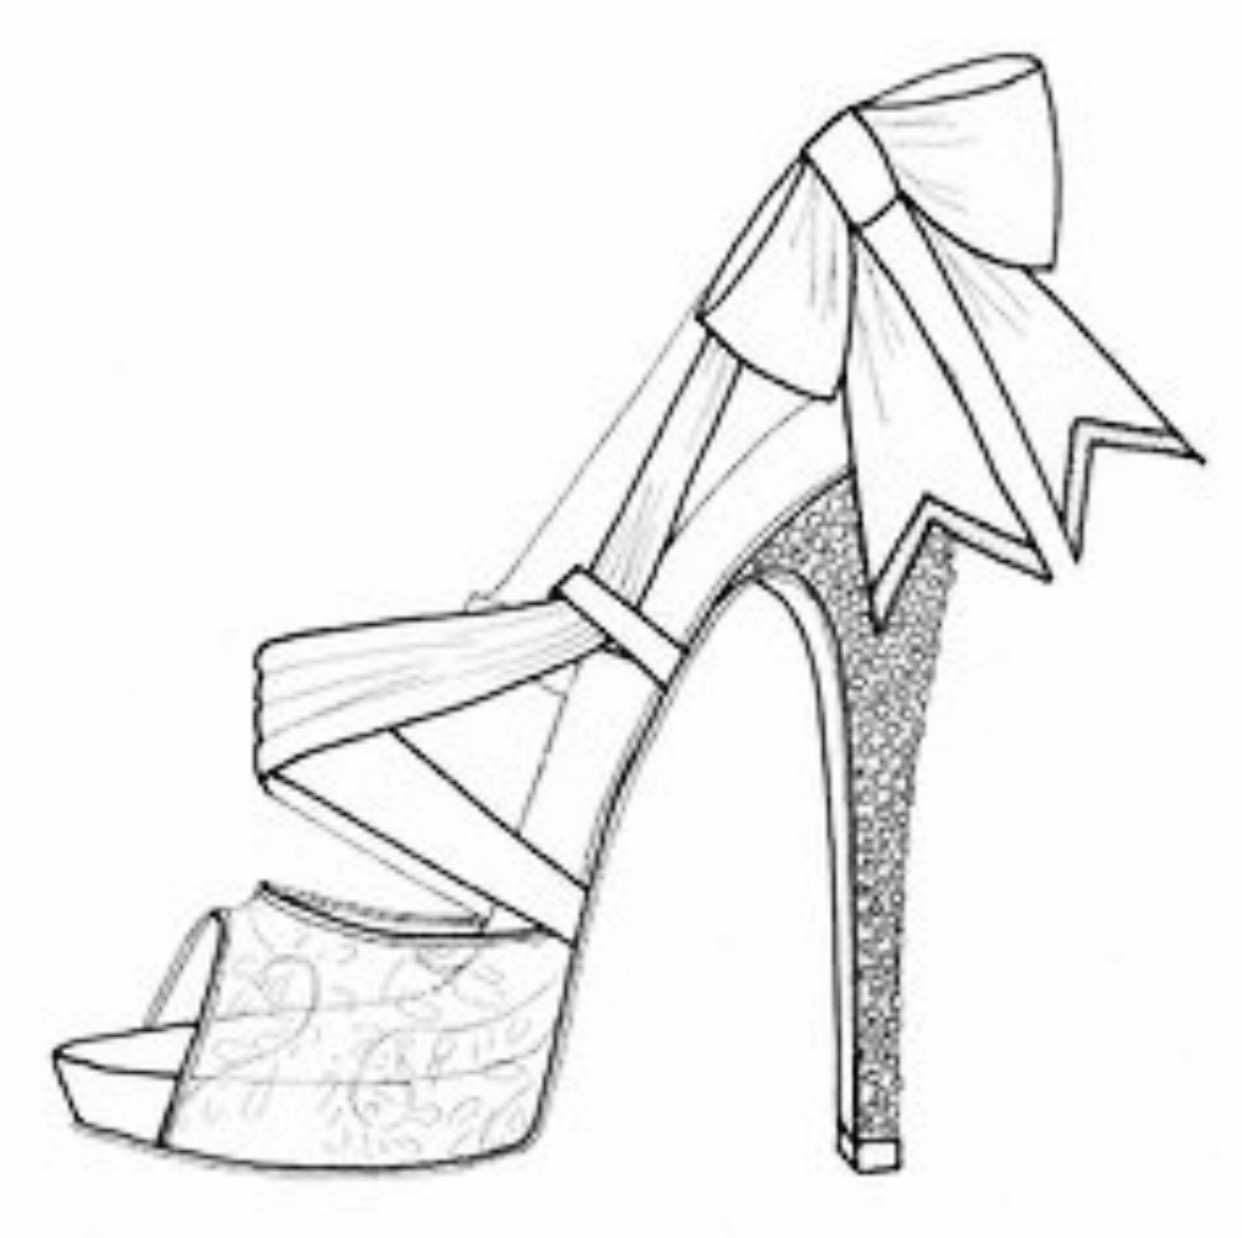 how to sketch high heels outline drawing woman high heel shoes sketch coloring page sketch how high to heels